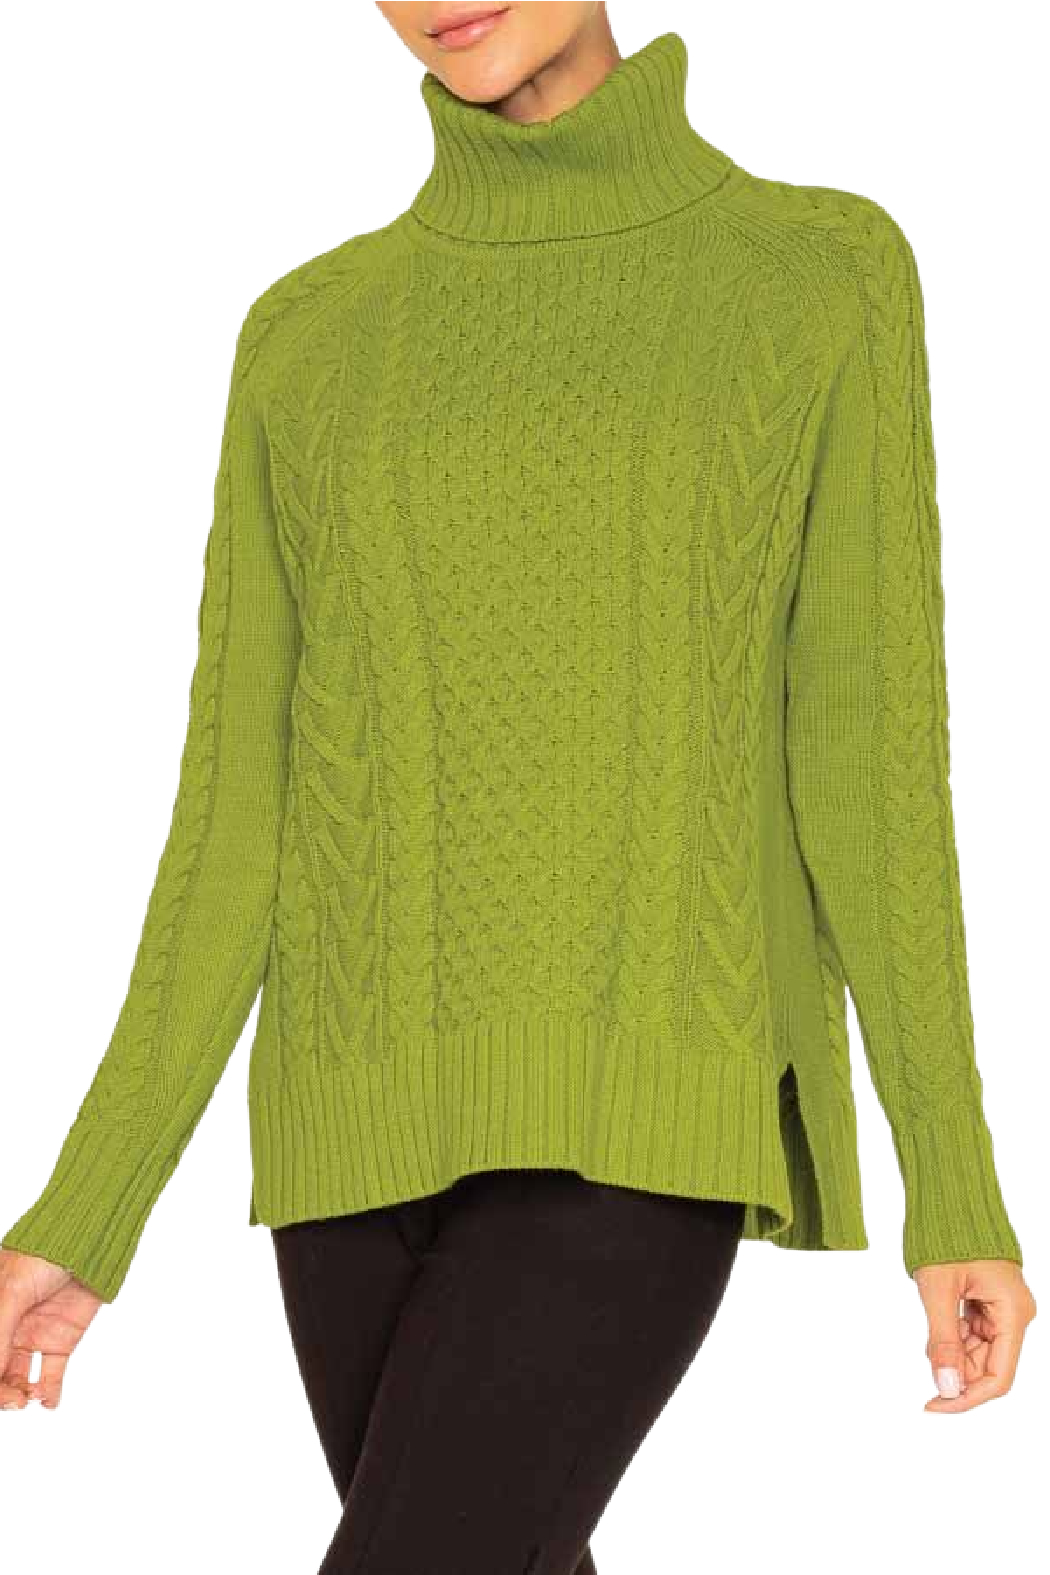 Alison Sheri  Apple Cable Knit Sweater - Main Image